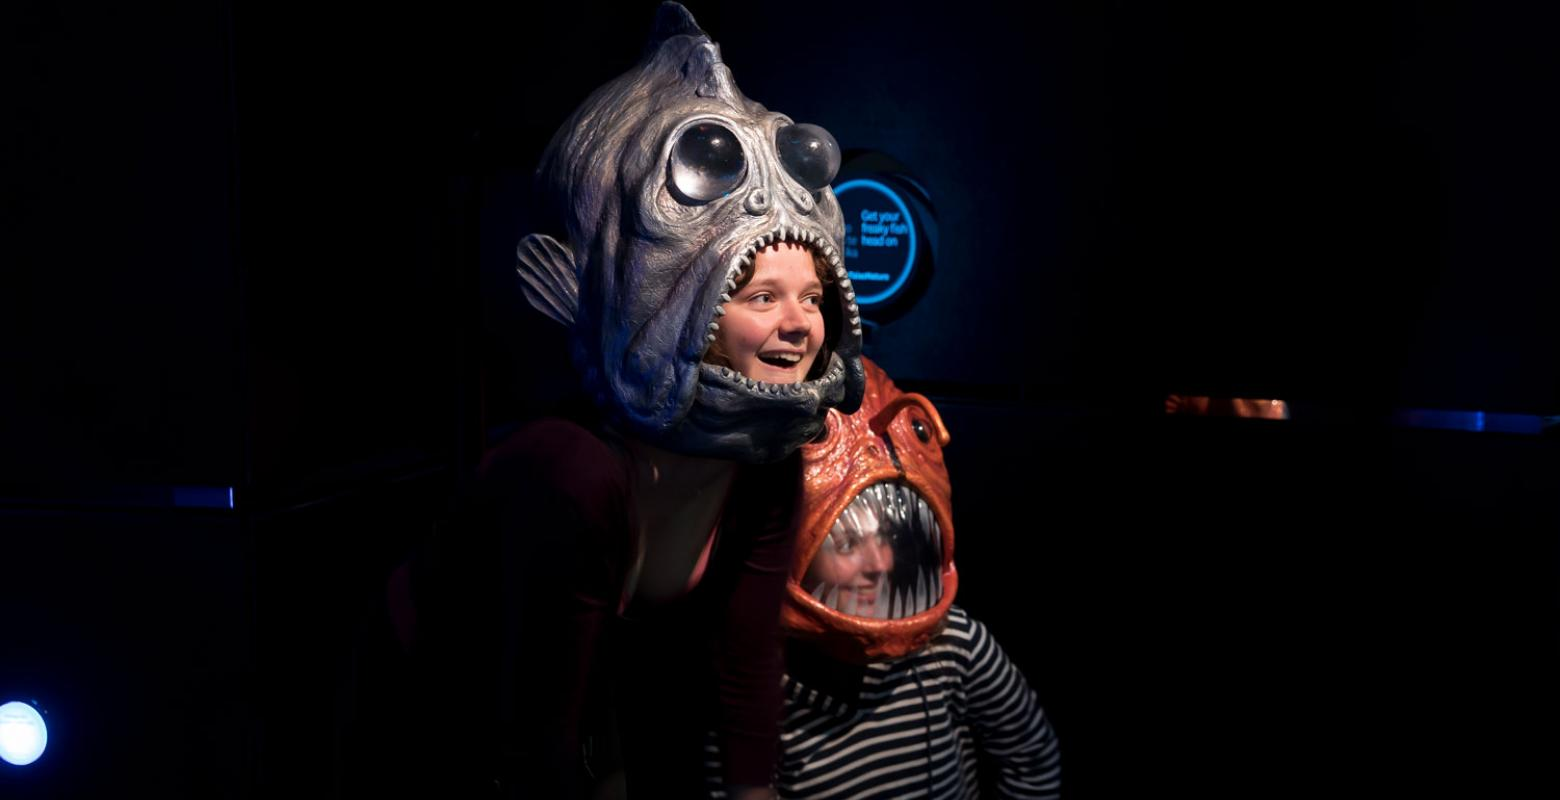 Children pose instead scary models of deep-sea fishes